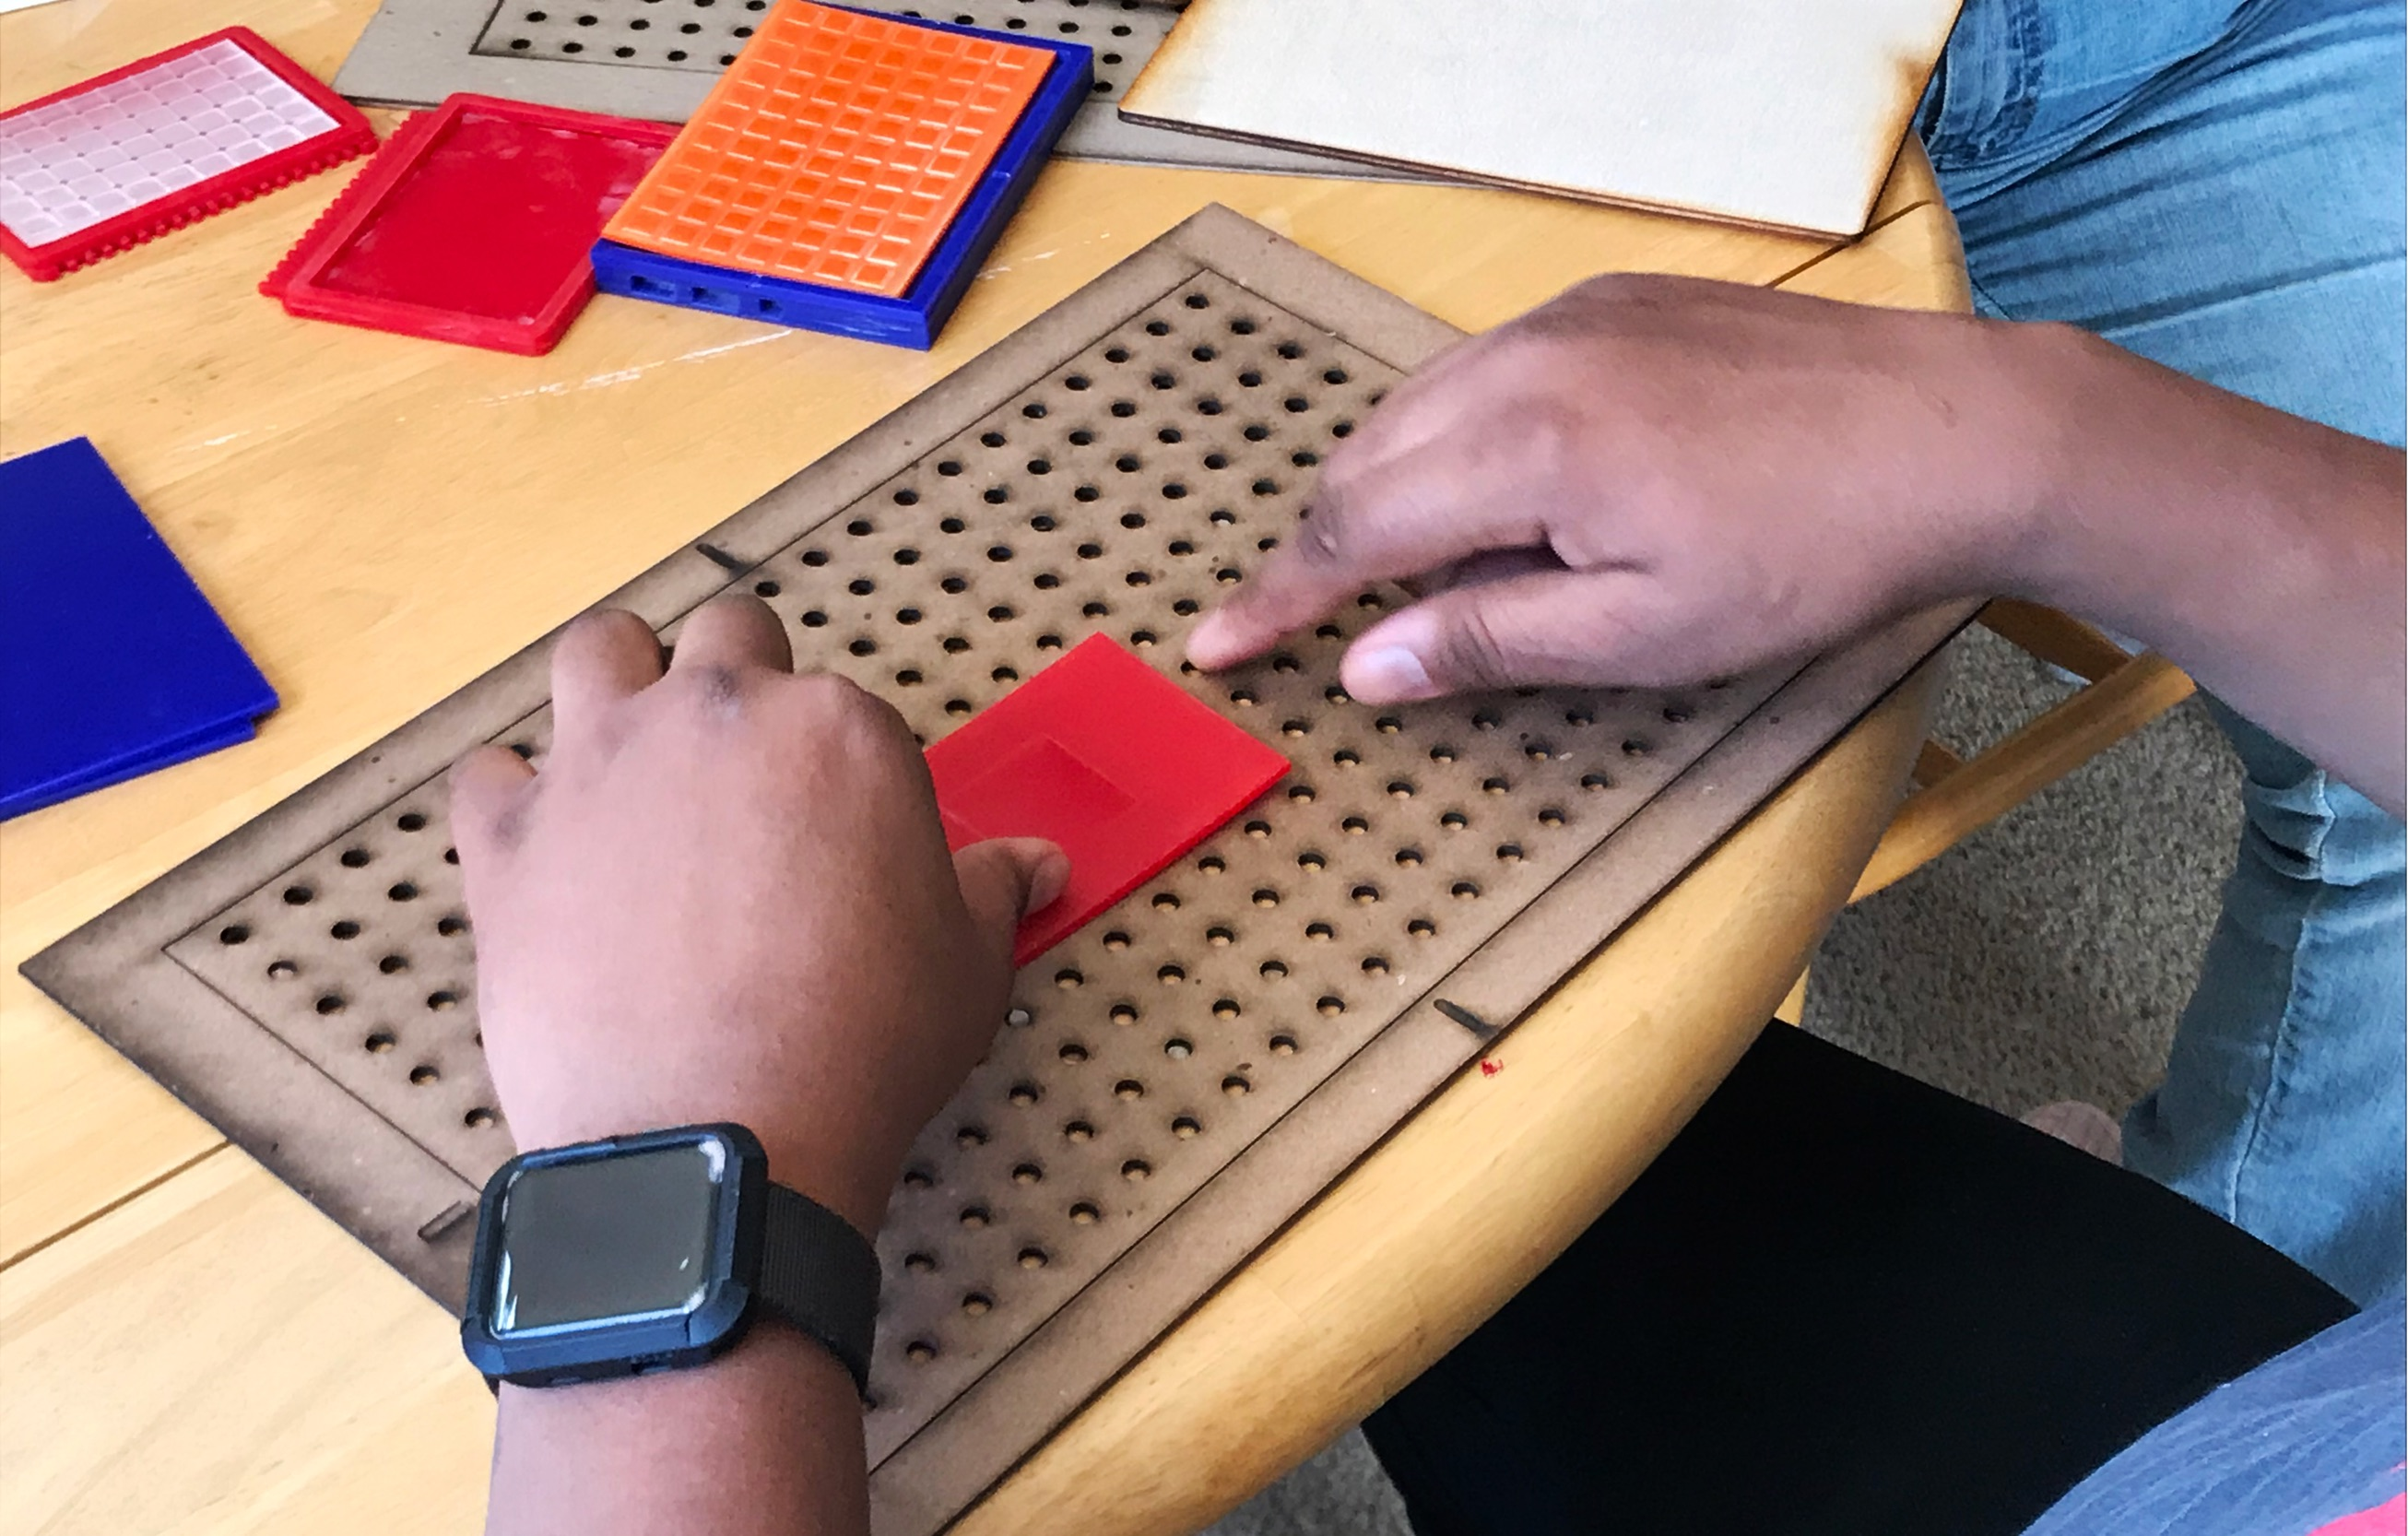 Image showing Participant trying different gridlines and trying to draw with a finger.